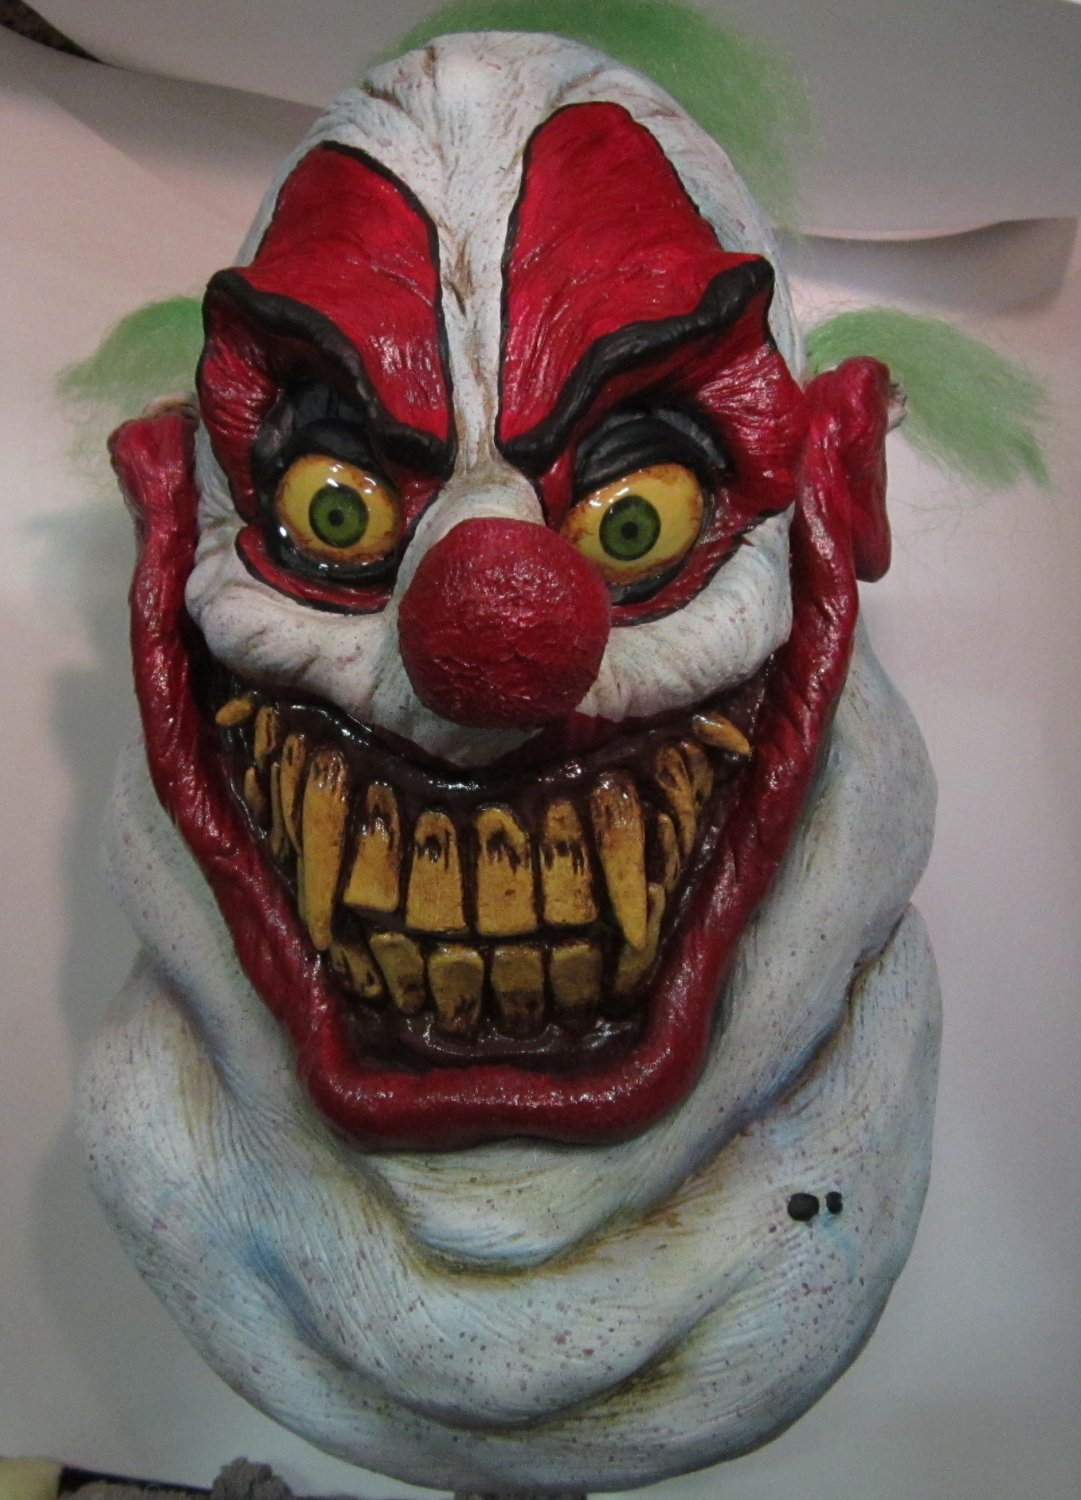 Sloppy the Clown of Death Nightmare Carnival Monster Scary Halloween Mask